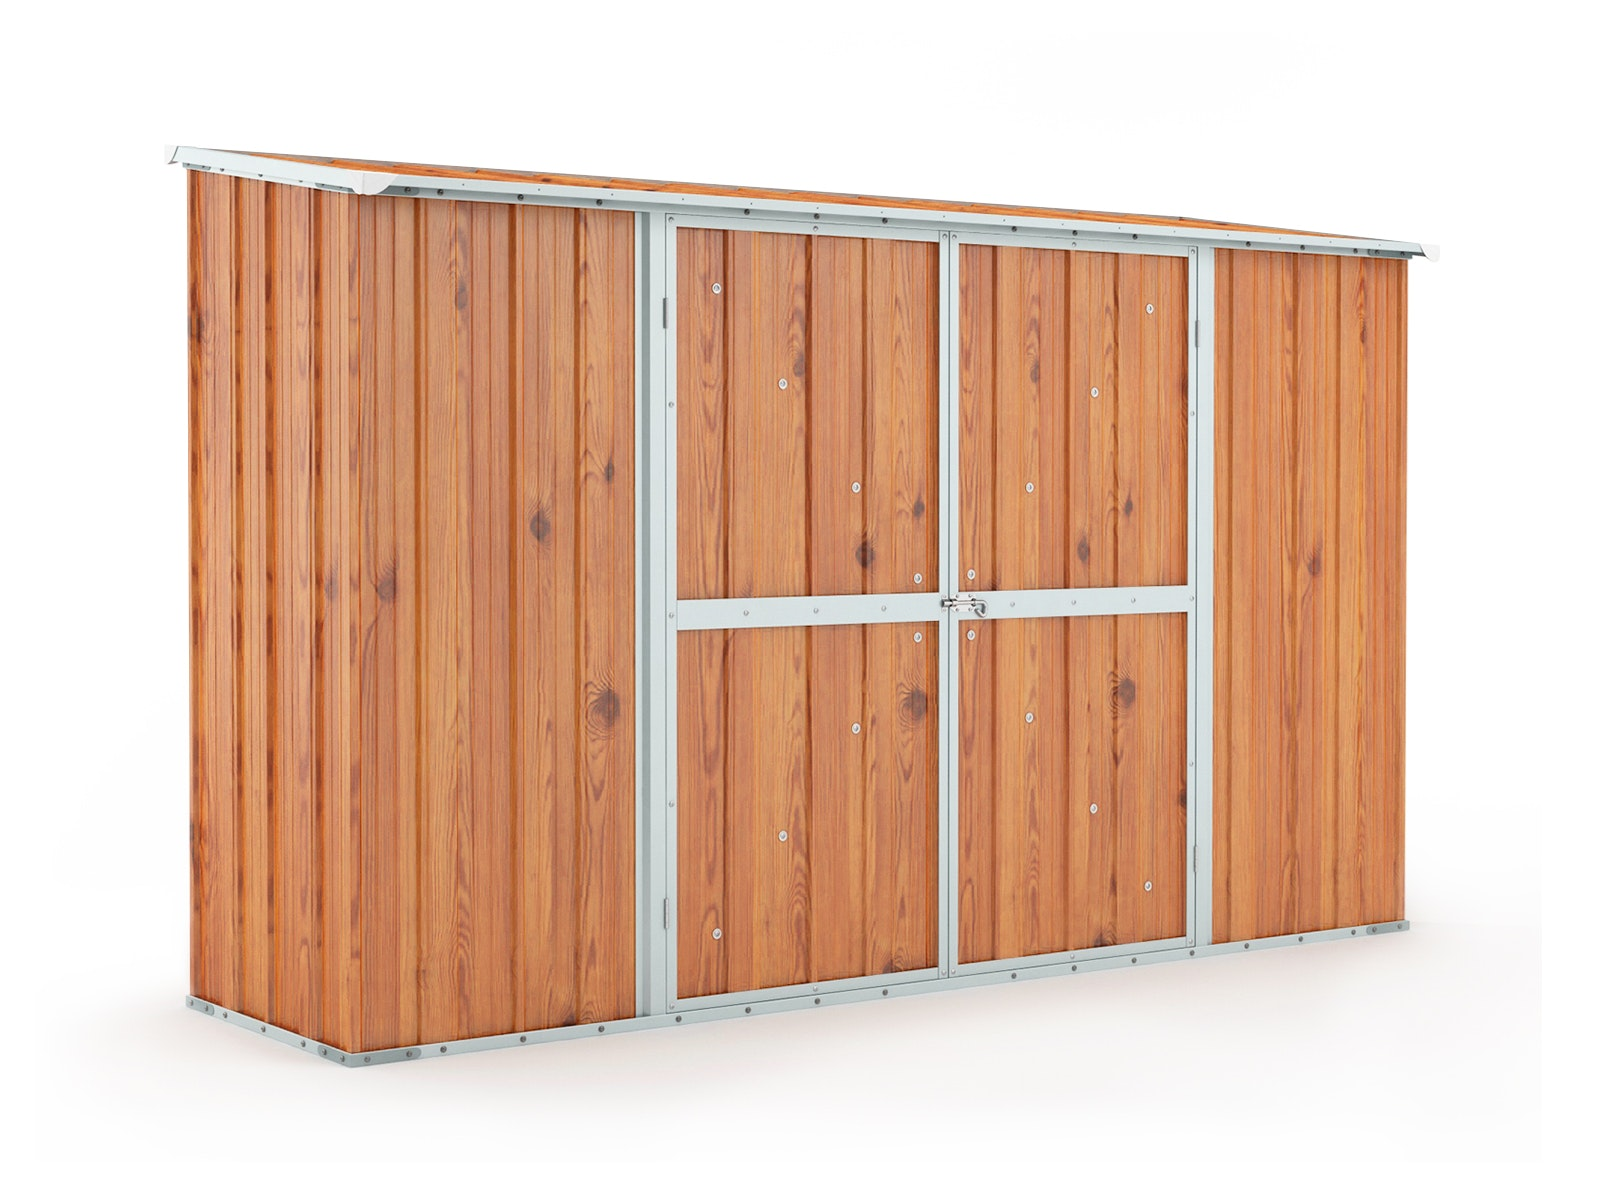 Garden Shed 3.07m x 0.79m x 1.92m Wood Finish